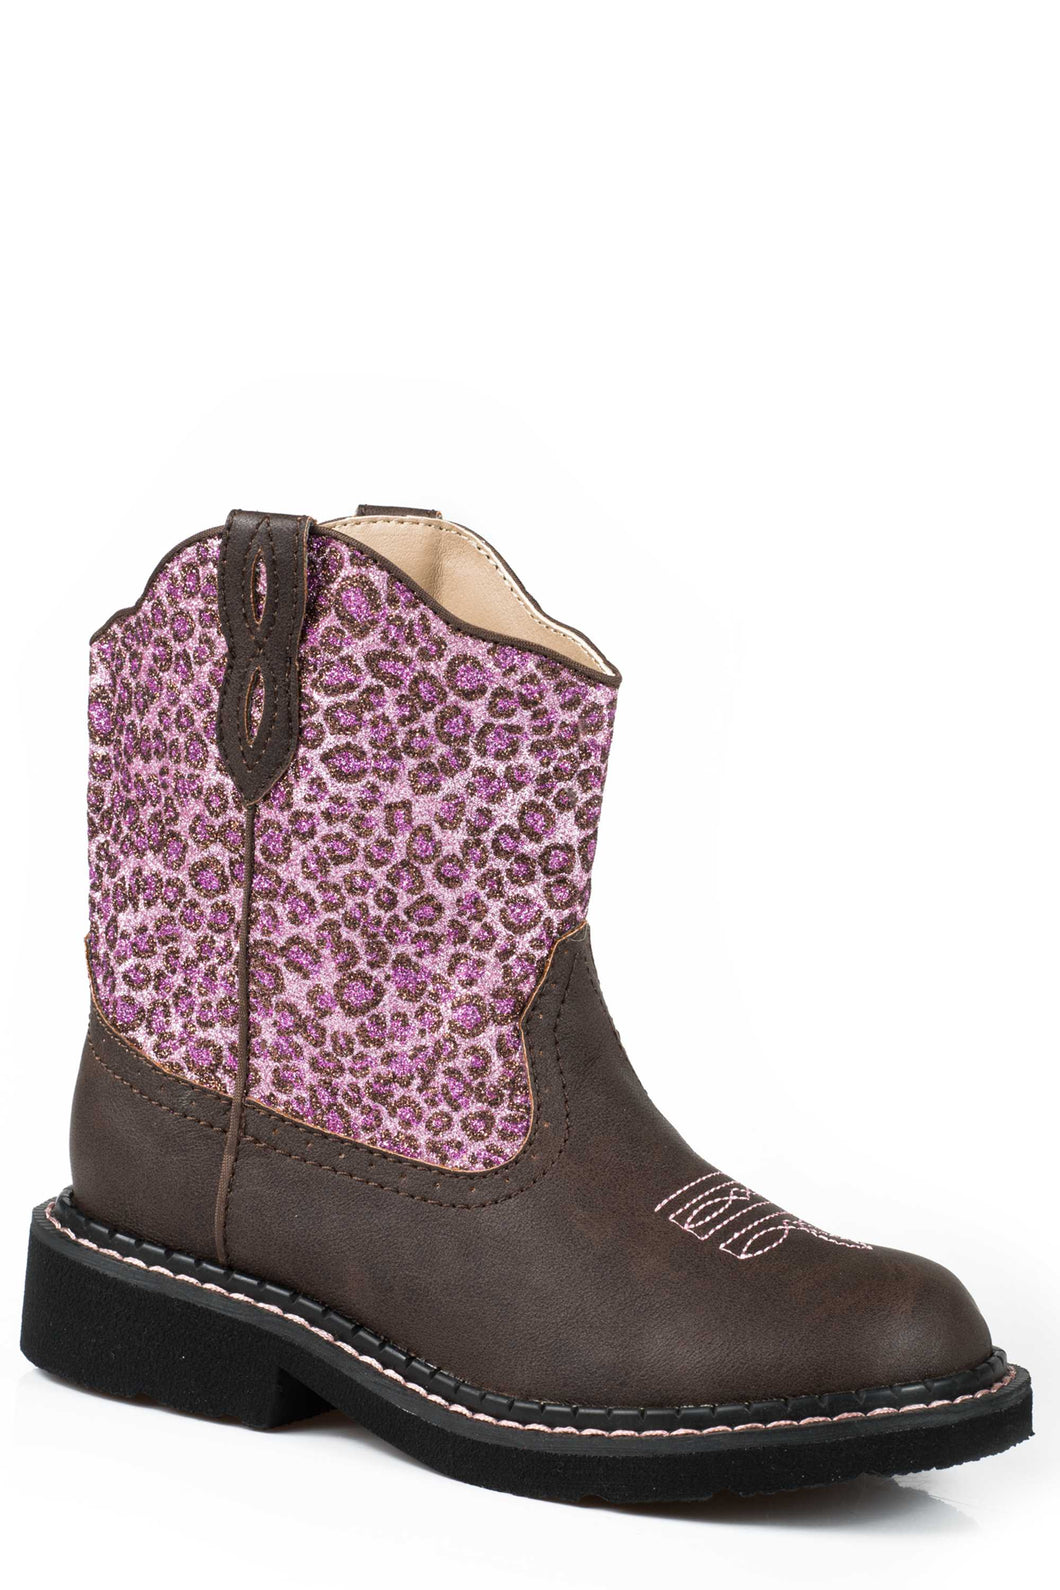 Cheetah Boot Kids Boot Brown Vamp Chunk With Pink Glitter